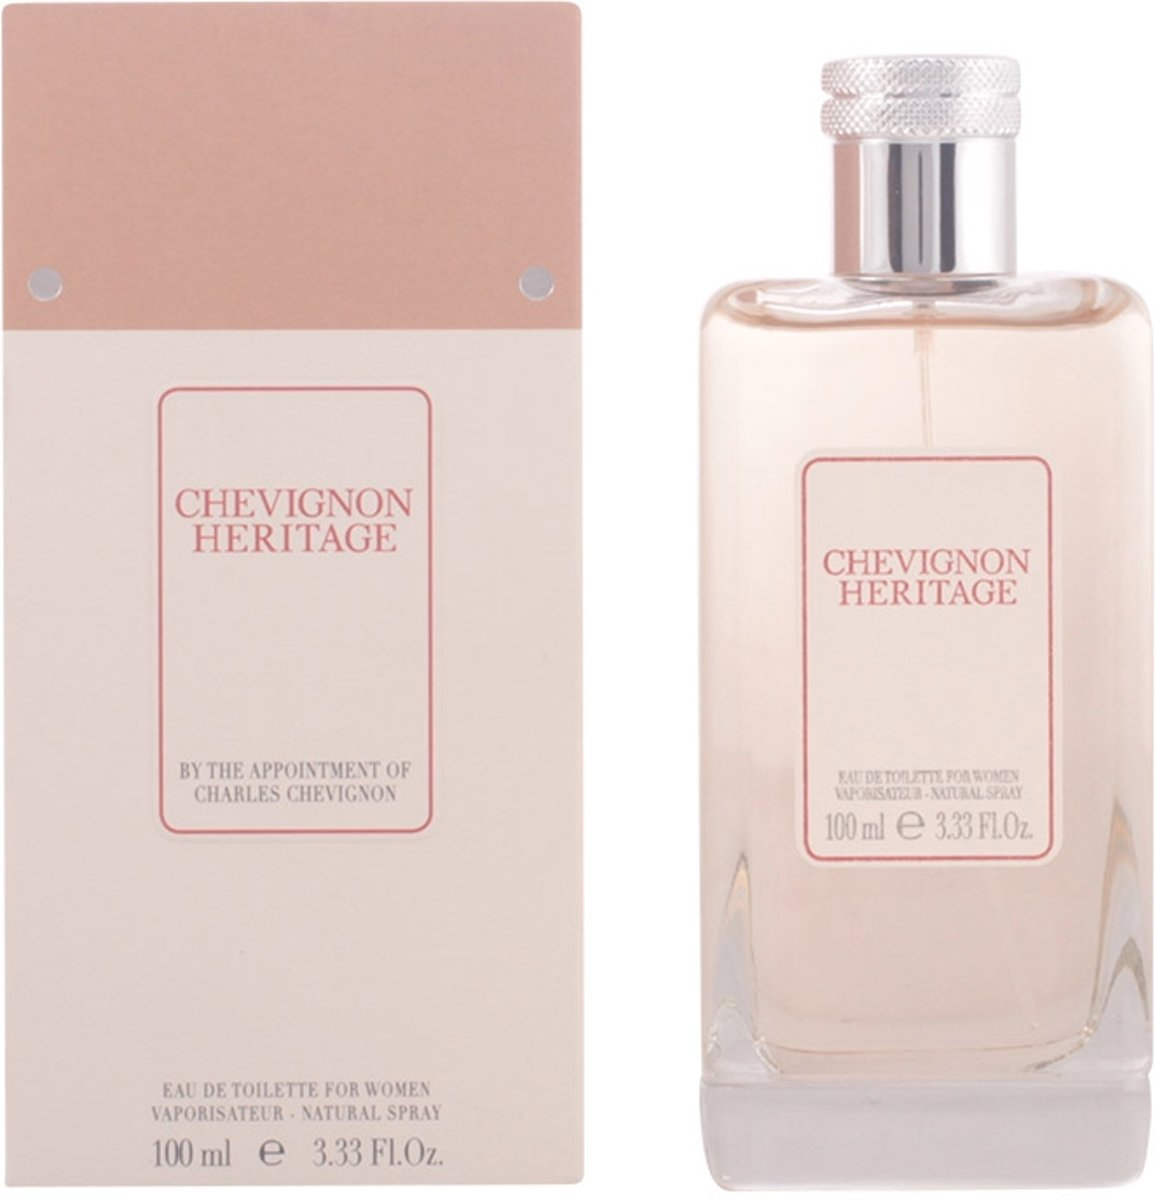 MULTI BUNDEL 2 stuks Chevignon Heritage Eau De Toilette Spray 100ml